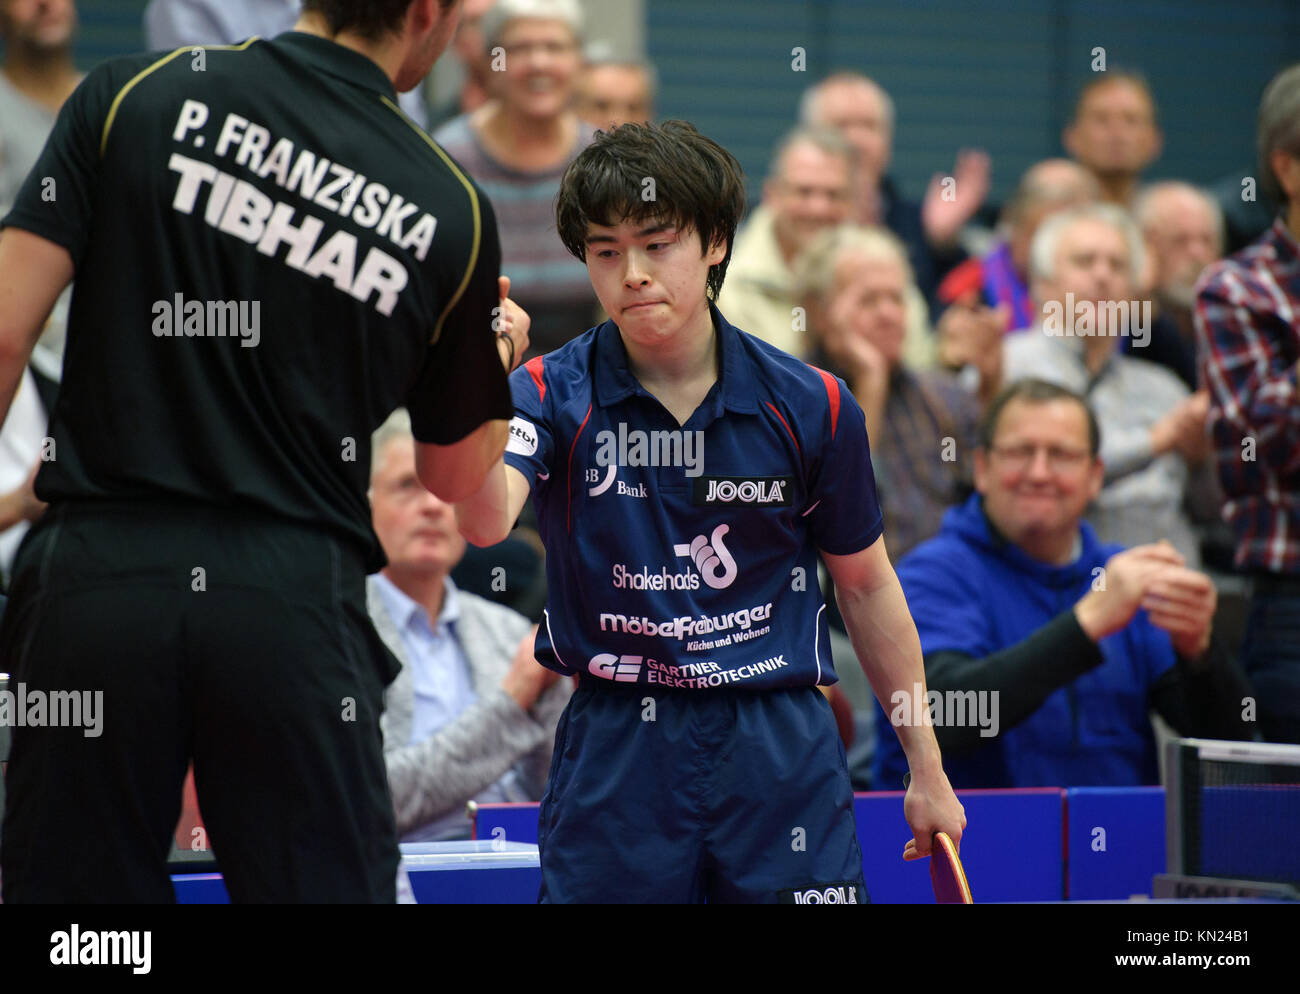 Germany. 10th Dec, 2017. Deutschland. 10th Dec, 2017. Masataka Morizono (Gruenwettersbach), gewinnt versus Patrick - Stock Image